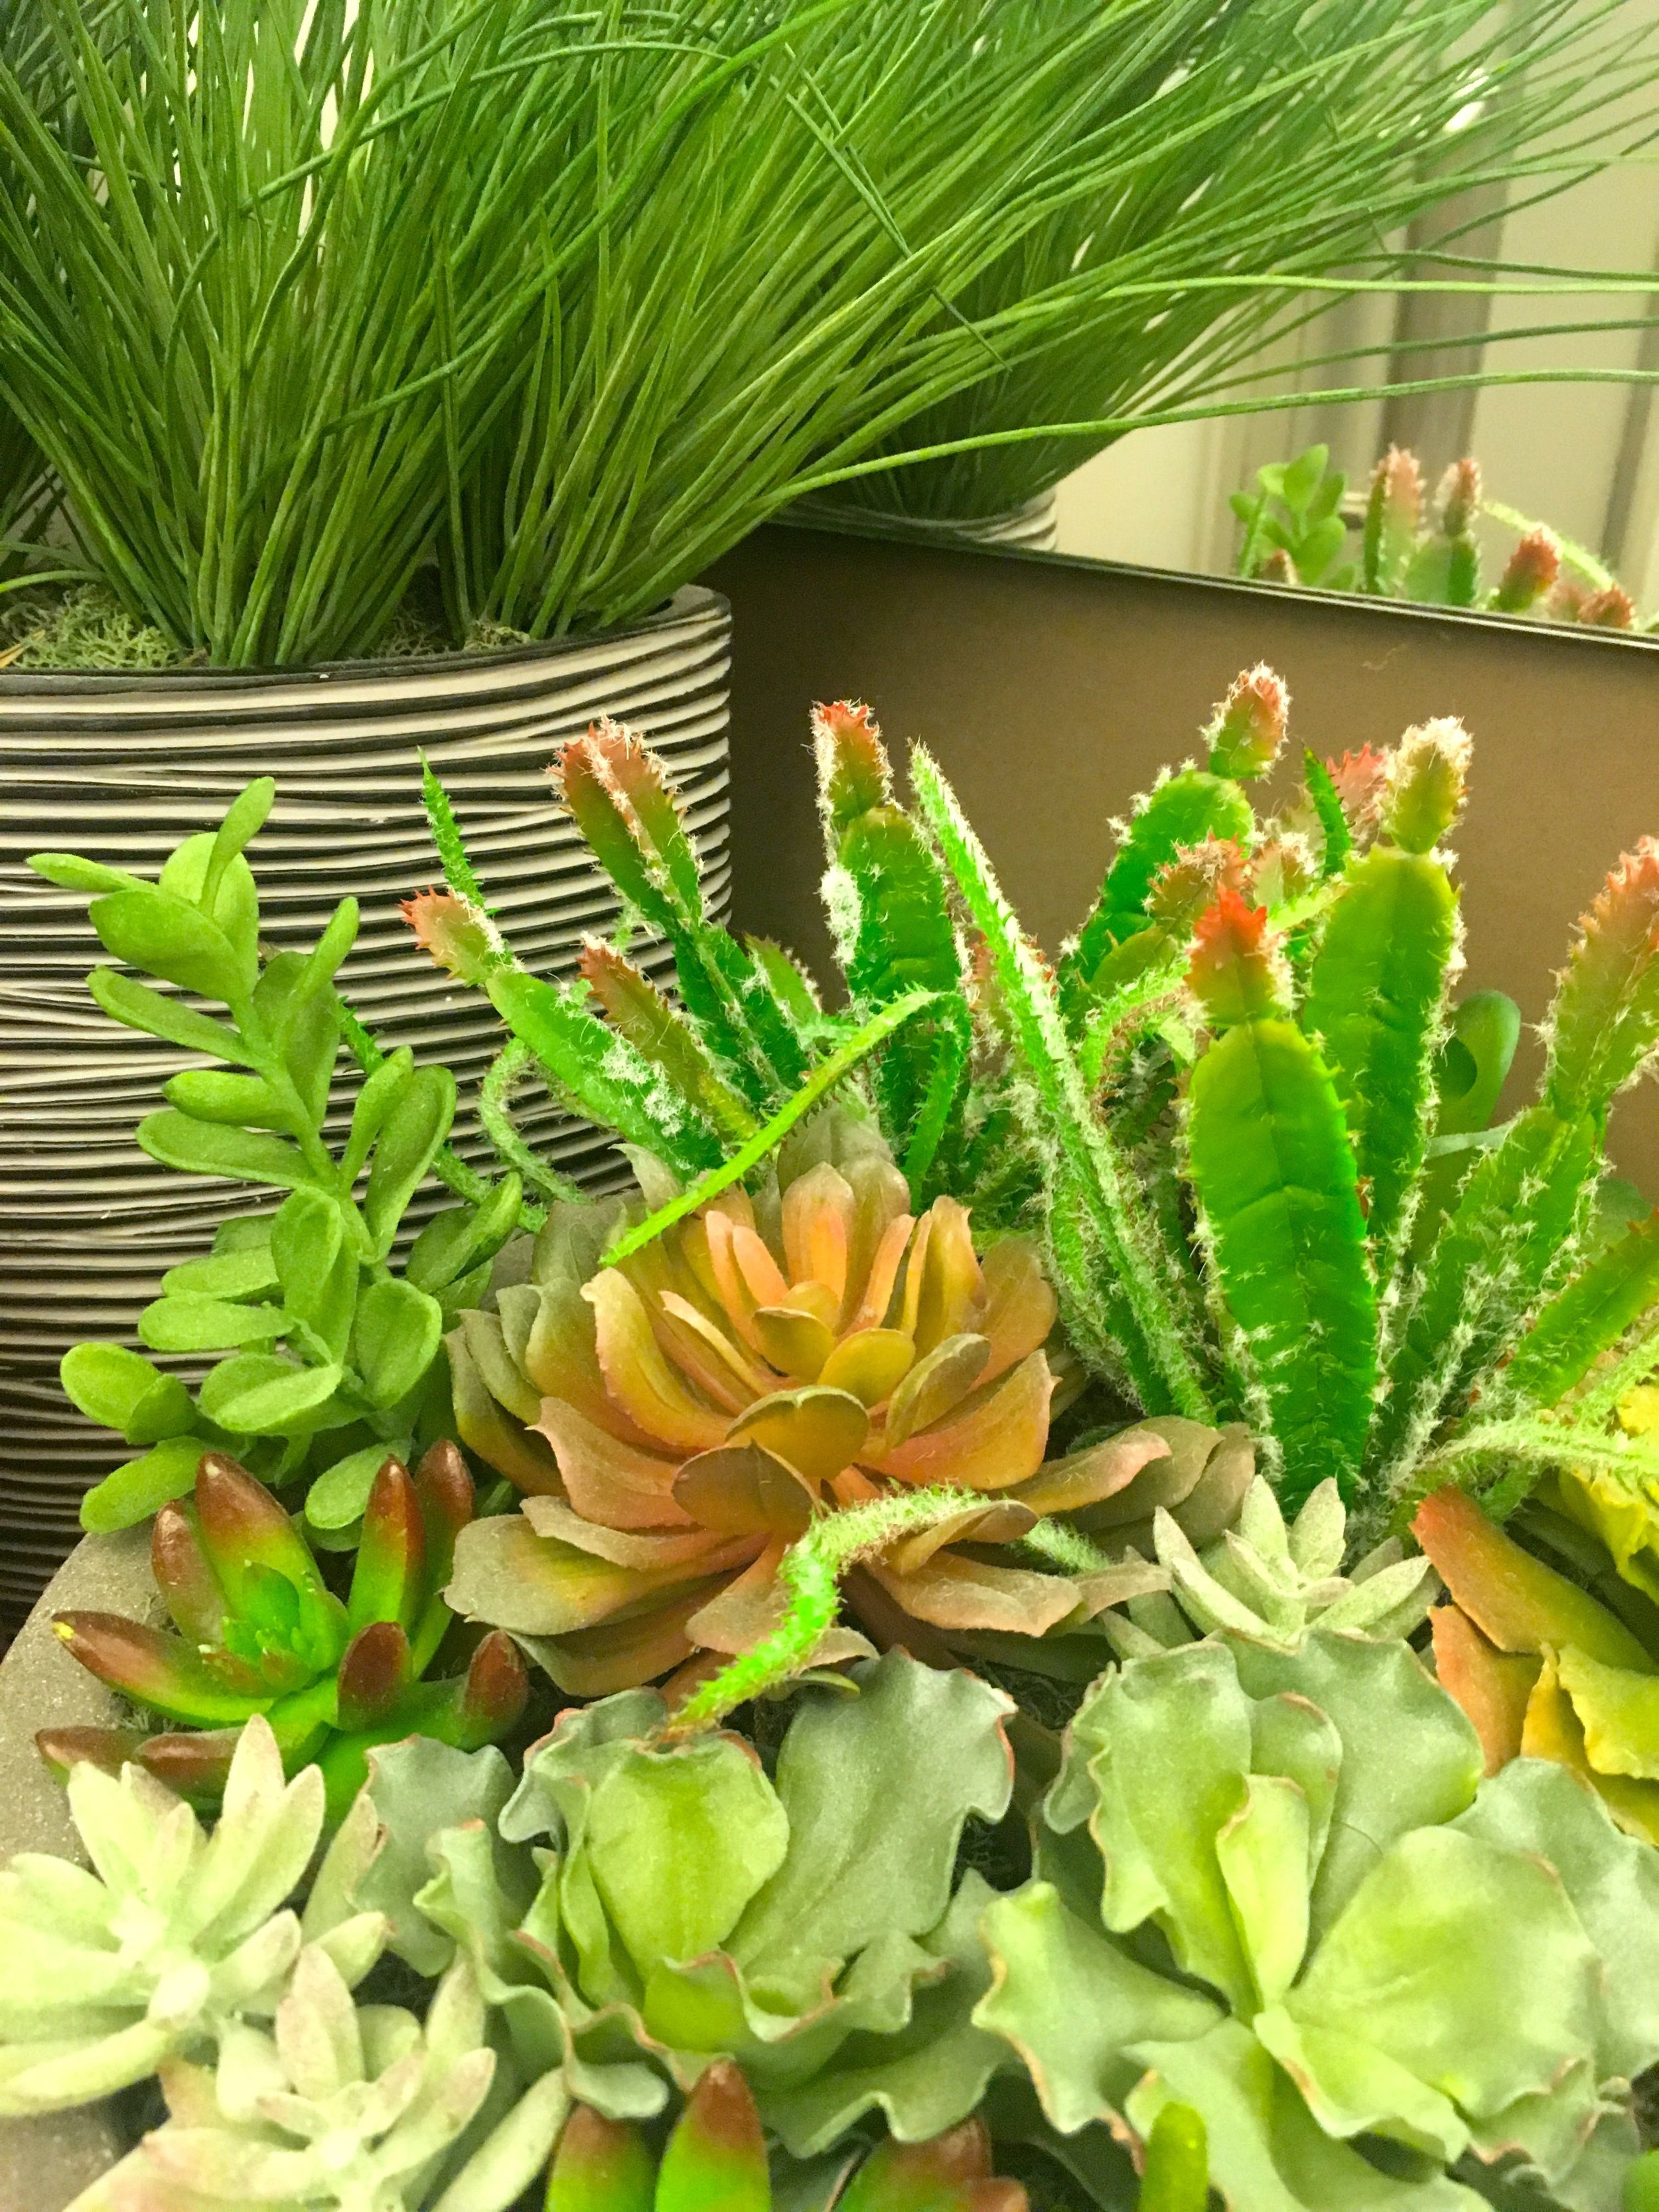 A close up of the corner plants